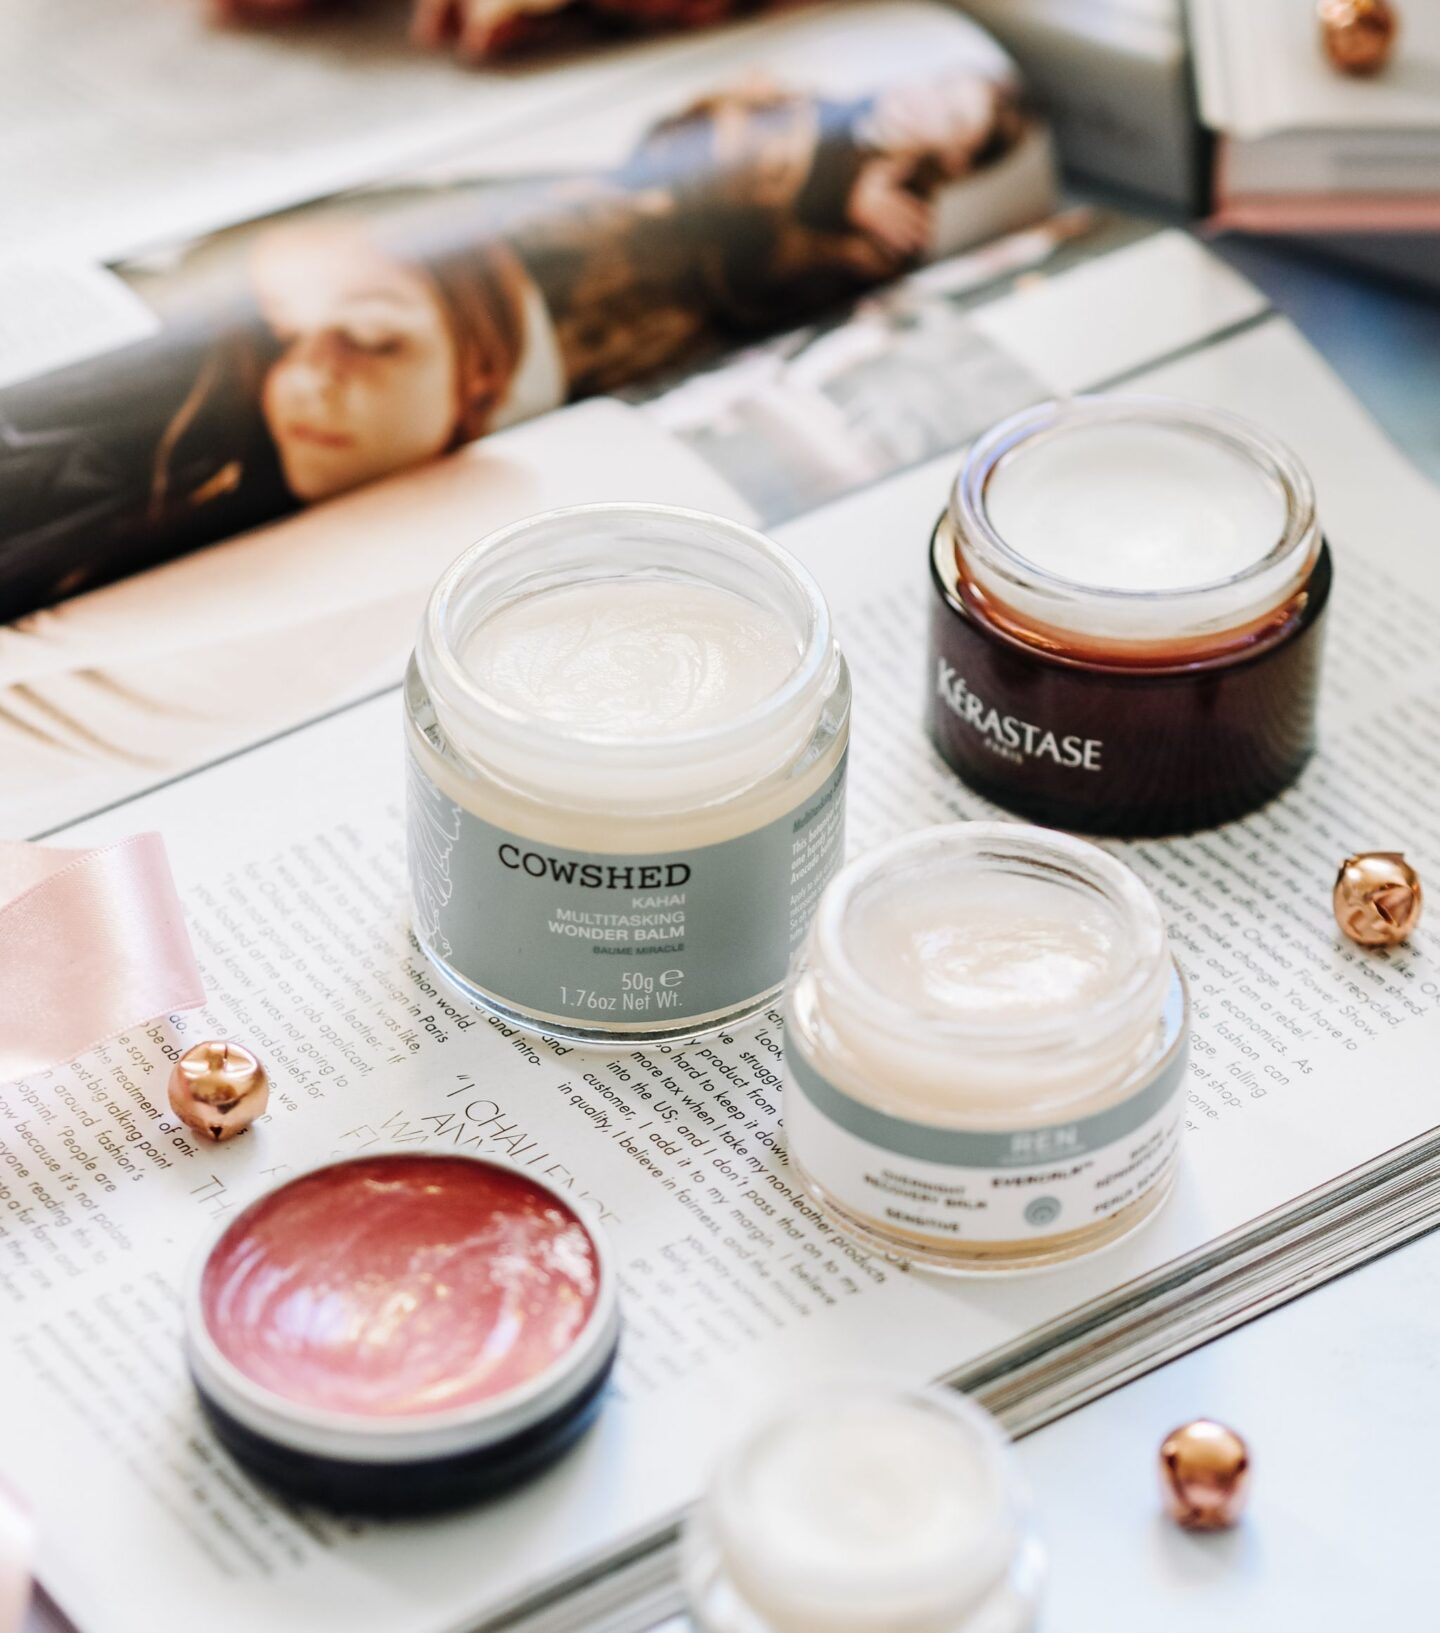 multi-tasking balm beauty must-have cowshed ren evercalm wonder balm soothe dry skin